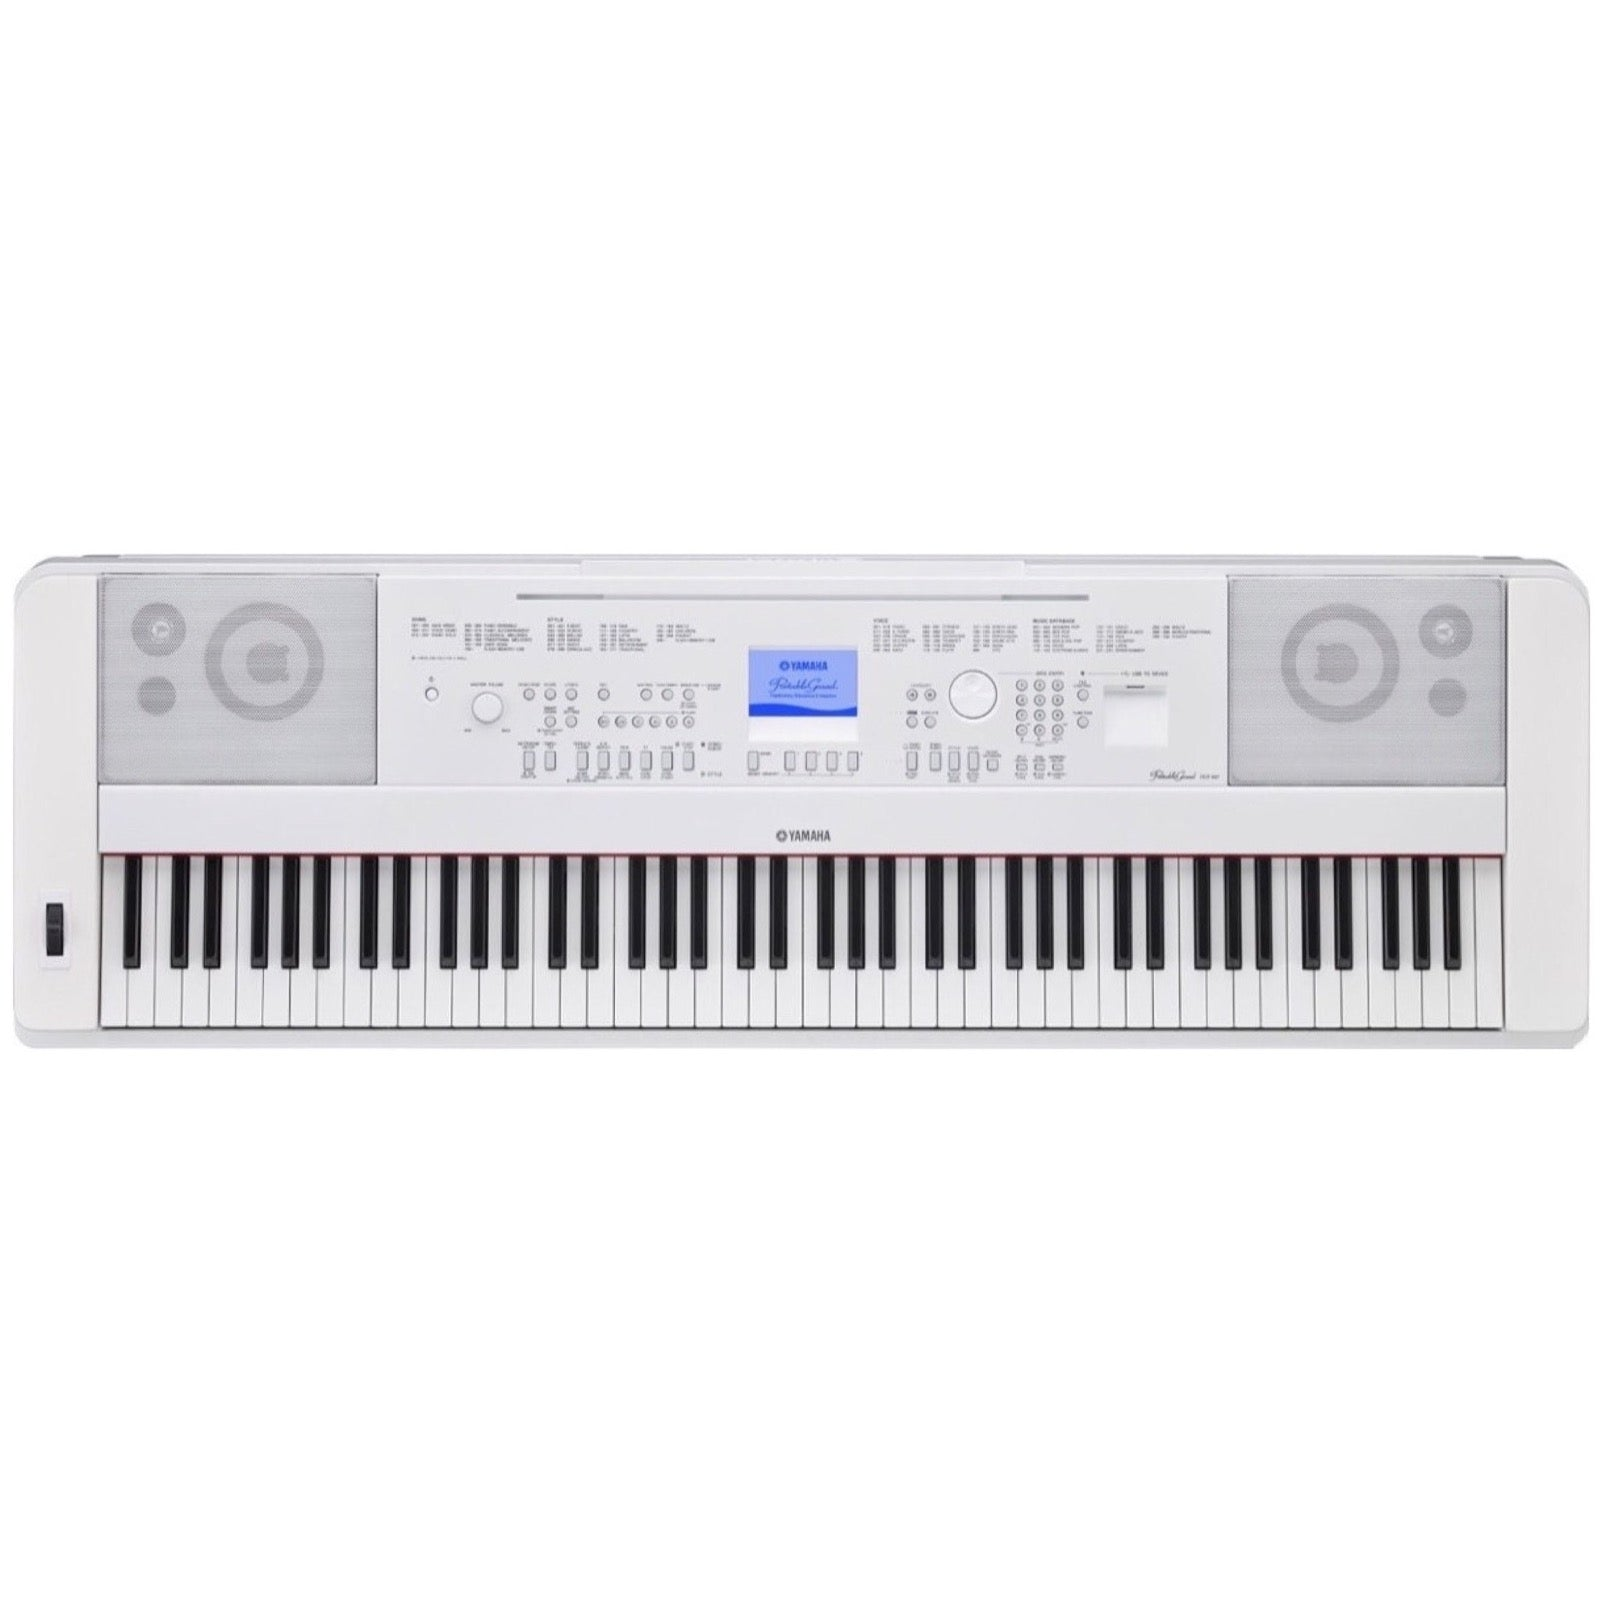 Yamaha DGX-660 Portable Digital Piano, White